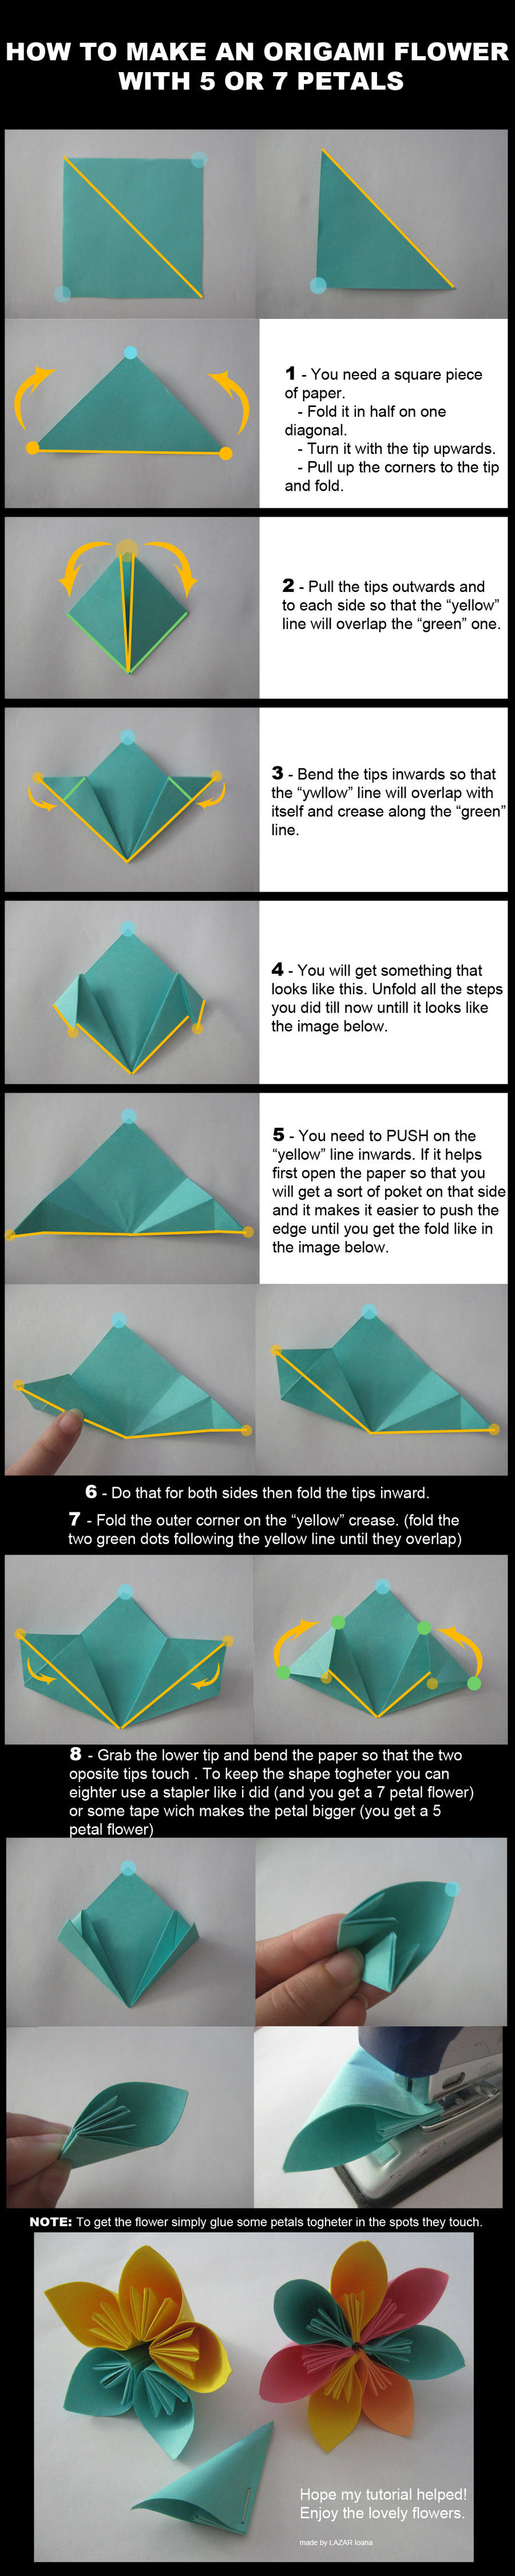 40 Origami Flowers You Can Do | Cuded | 4500x900